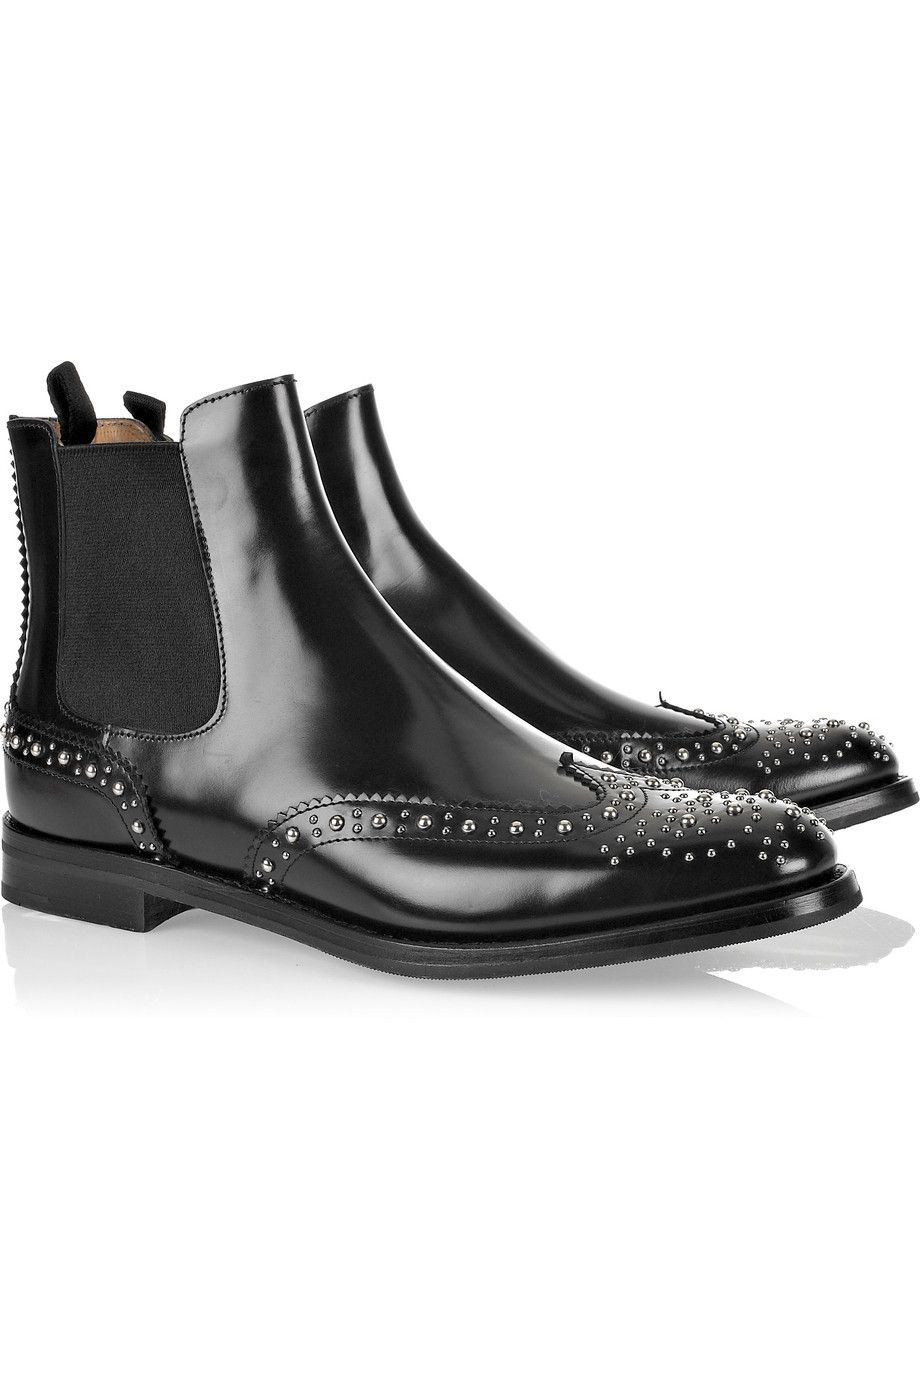 Church'sStudded ankle boots